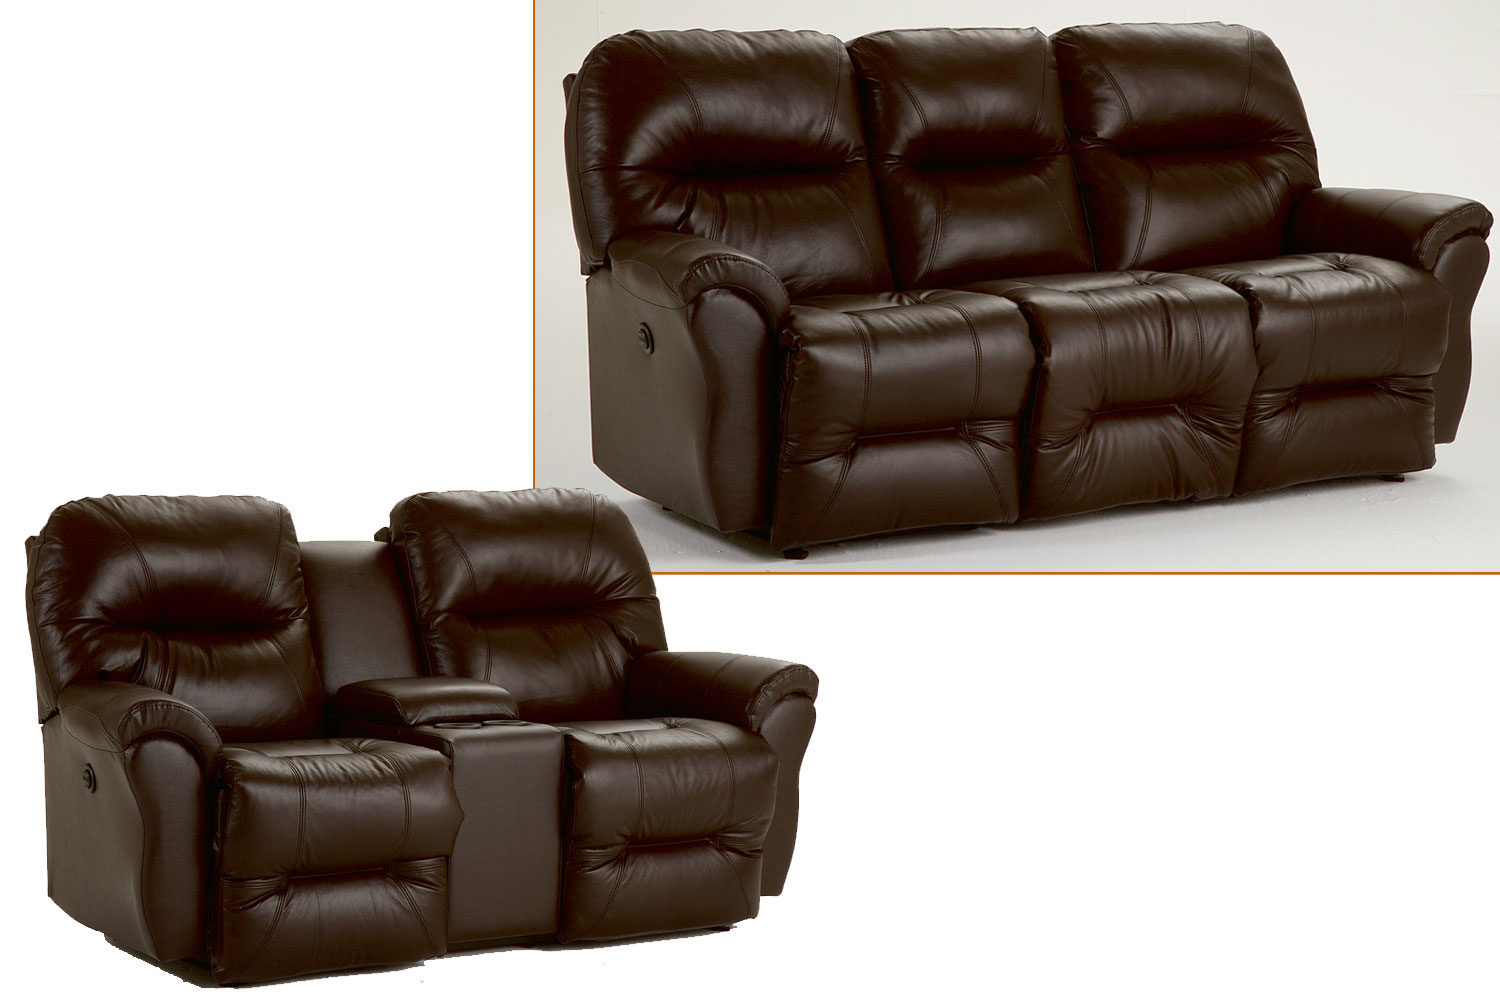 Recliner Sofa Clipart Clipground ~ Leather Sofa And Recliner